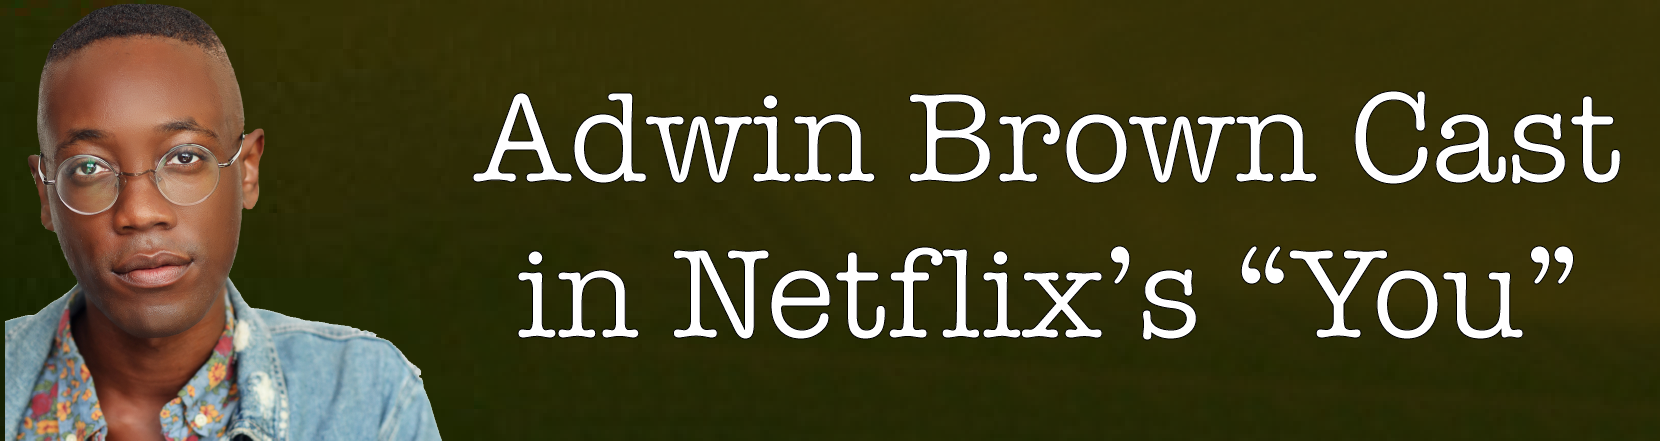 "Adwin Brown Cast in Netflix's ""You"""